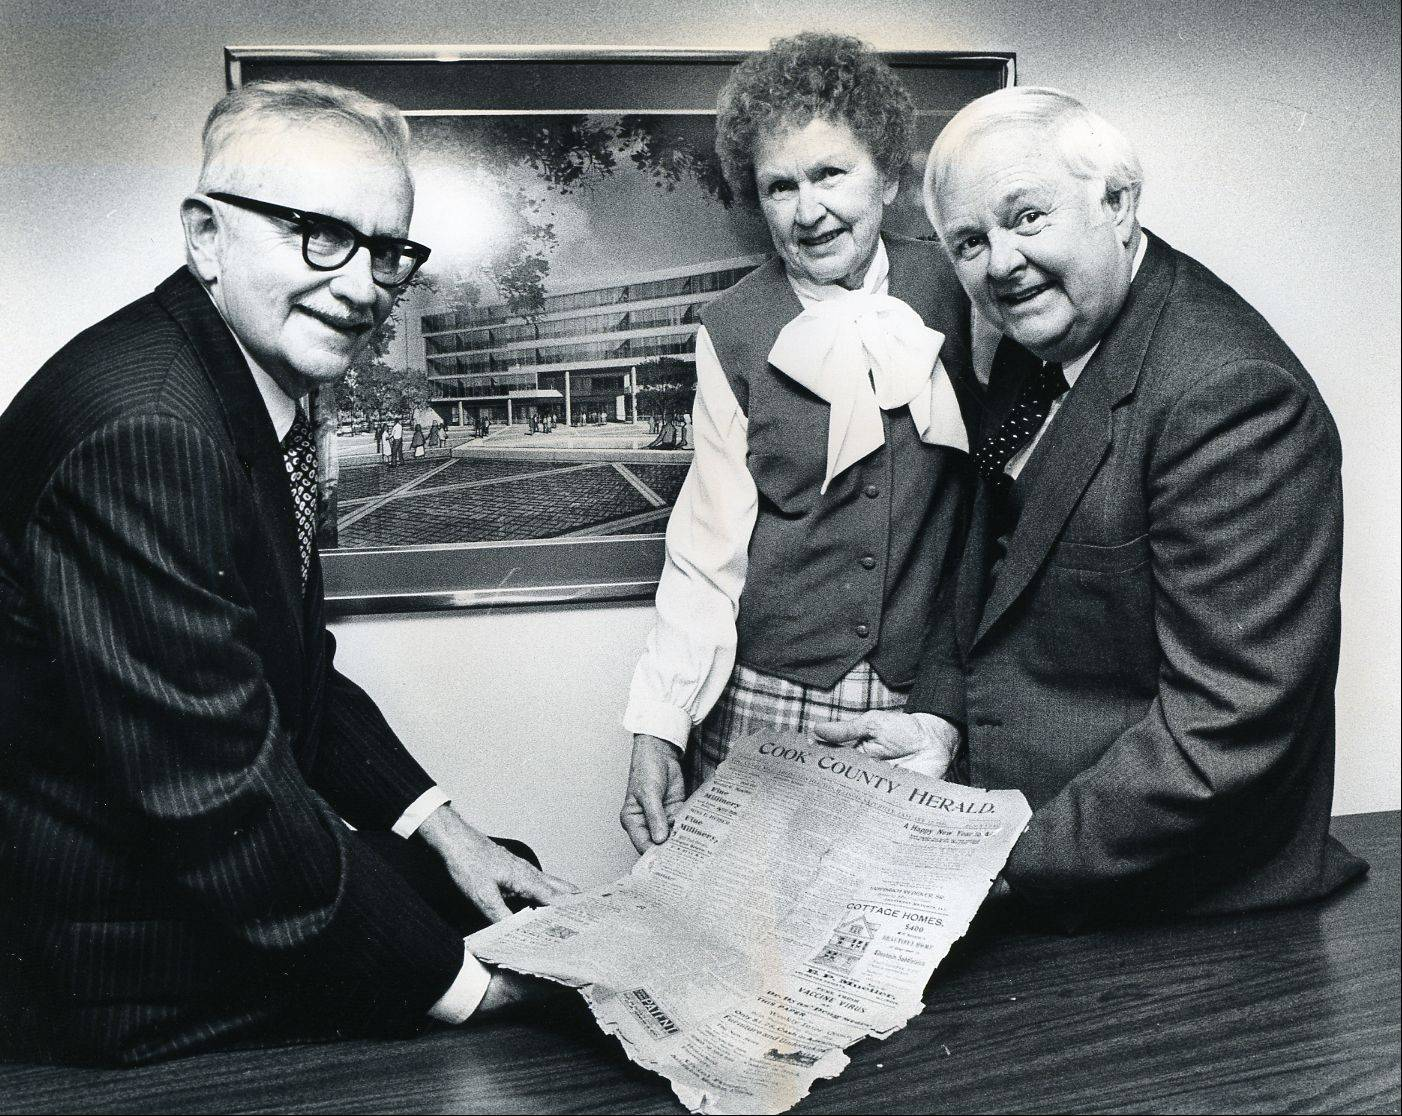 Stuart Paddock Jr. took over the Daily Herald in the 1960s with his brother, Robert, and sister, Margie Paddock Flanders.